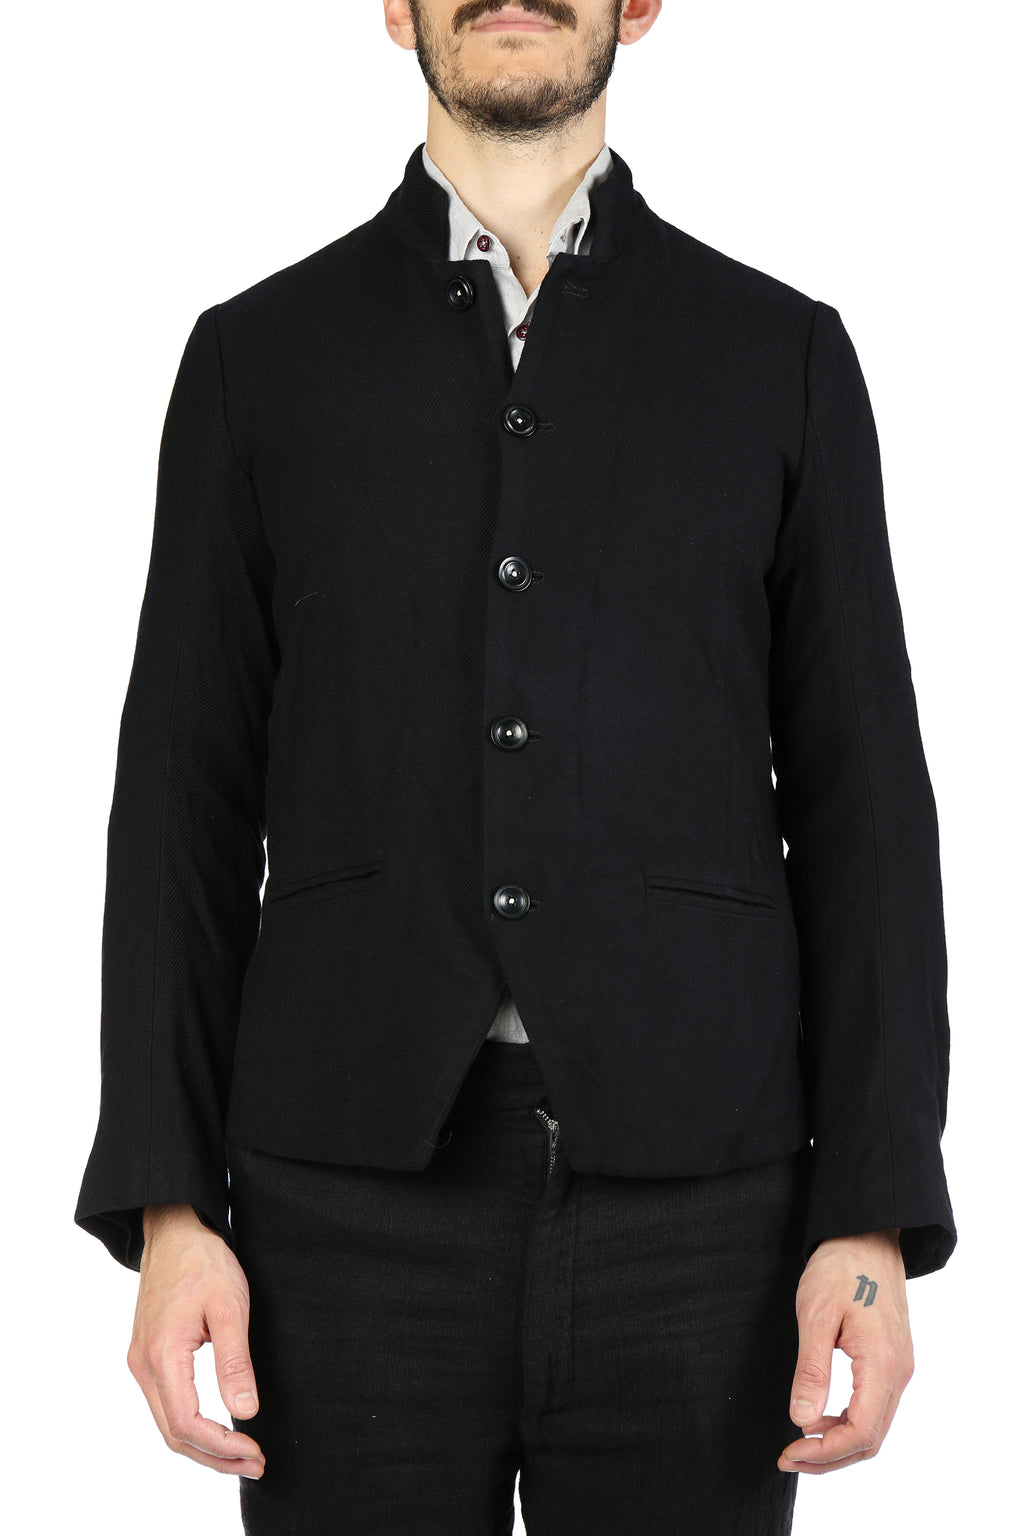 GEOFFREY B SMALL MEN HANDMADE SINGLE-BREASTED 5-BUTTON FULLY-LINED JACKET W/HANDMADE BUTTONHOLES AND BUTTONS